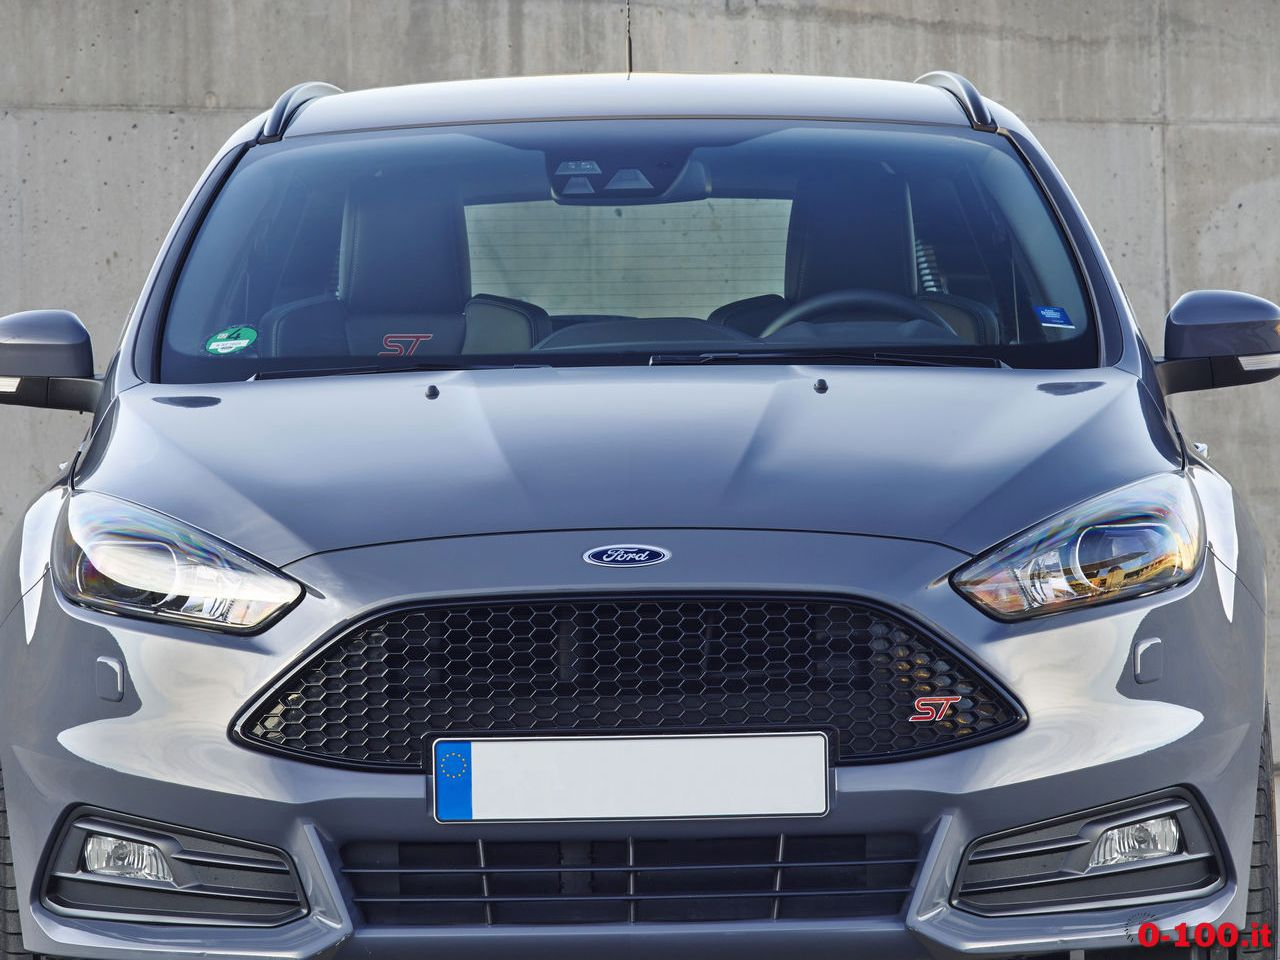 test-drive-ford-focus-dci-st-station-wagon_0-100_30